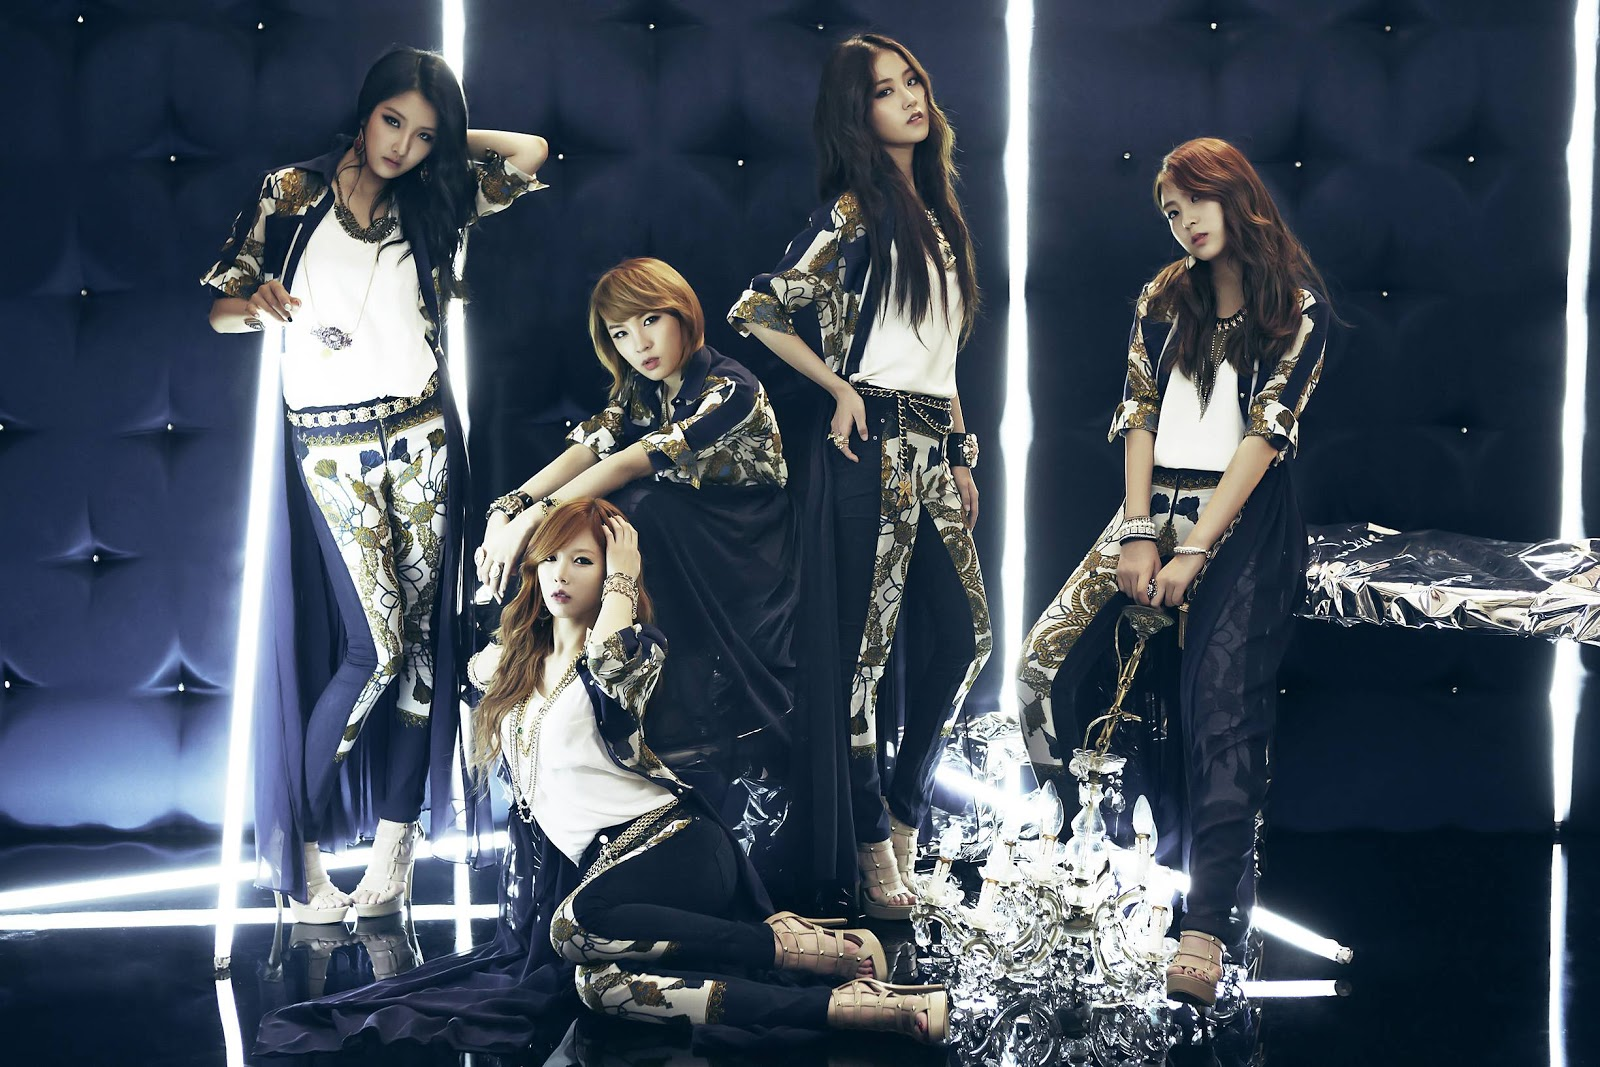 4Minute Love Tension Concept Pictures amp Wallpaper 1600x1067